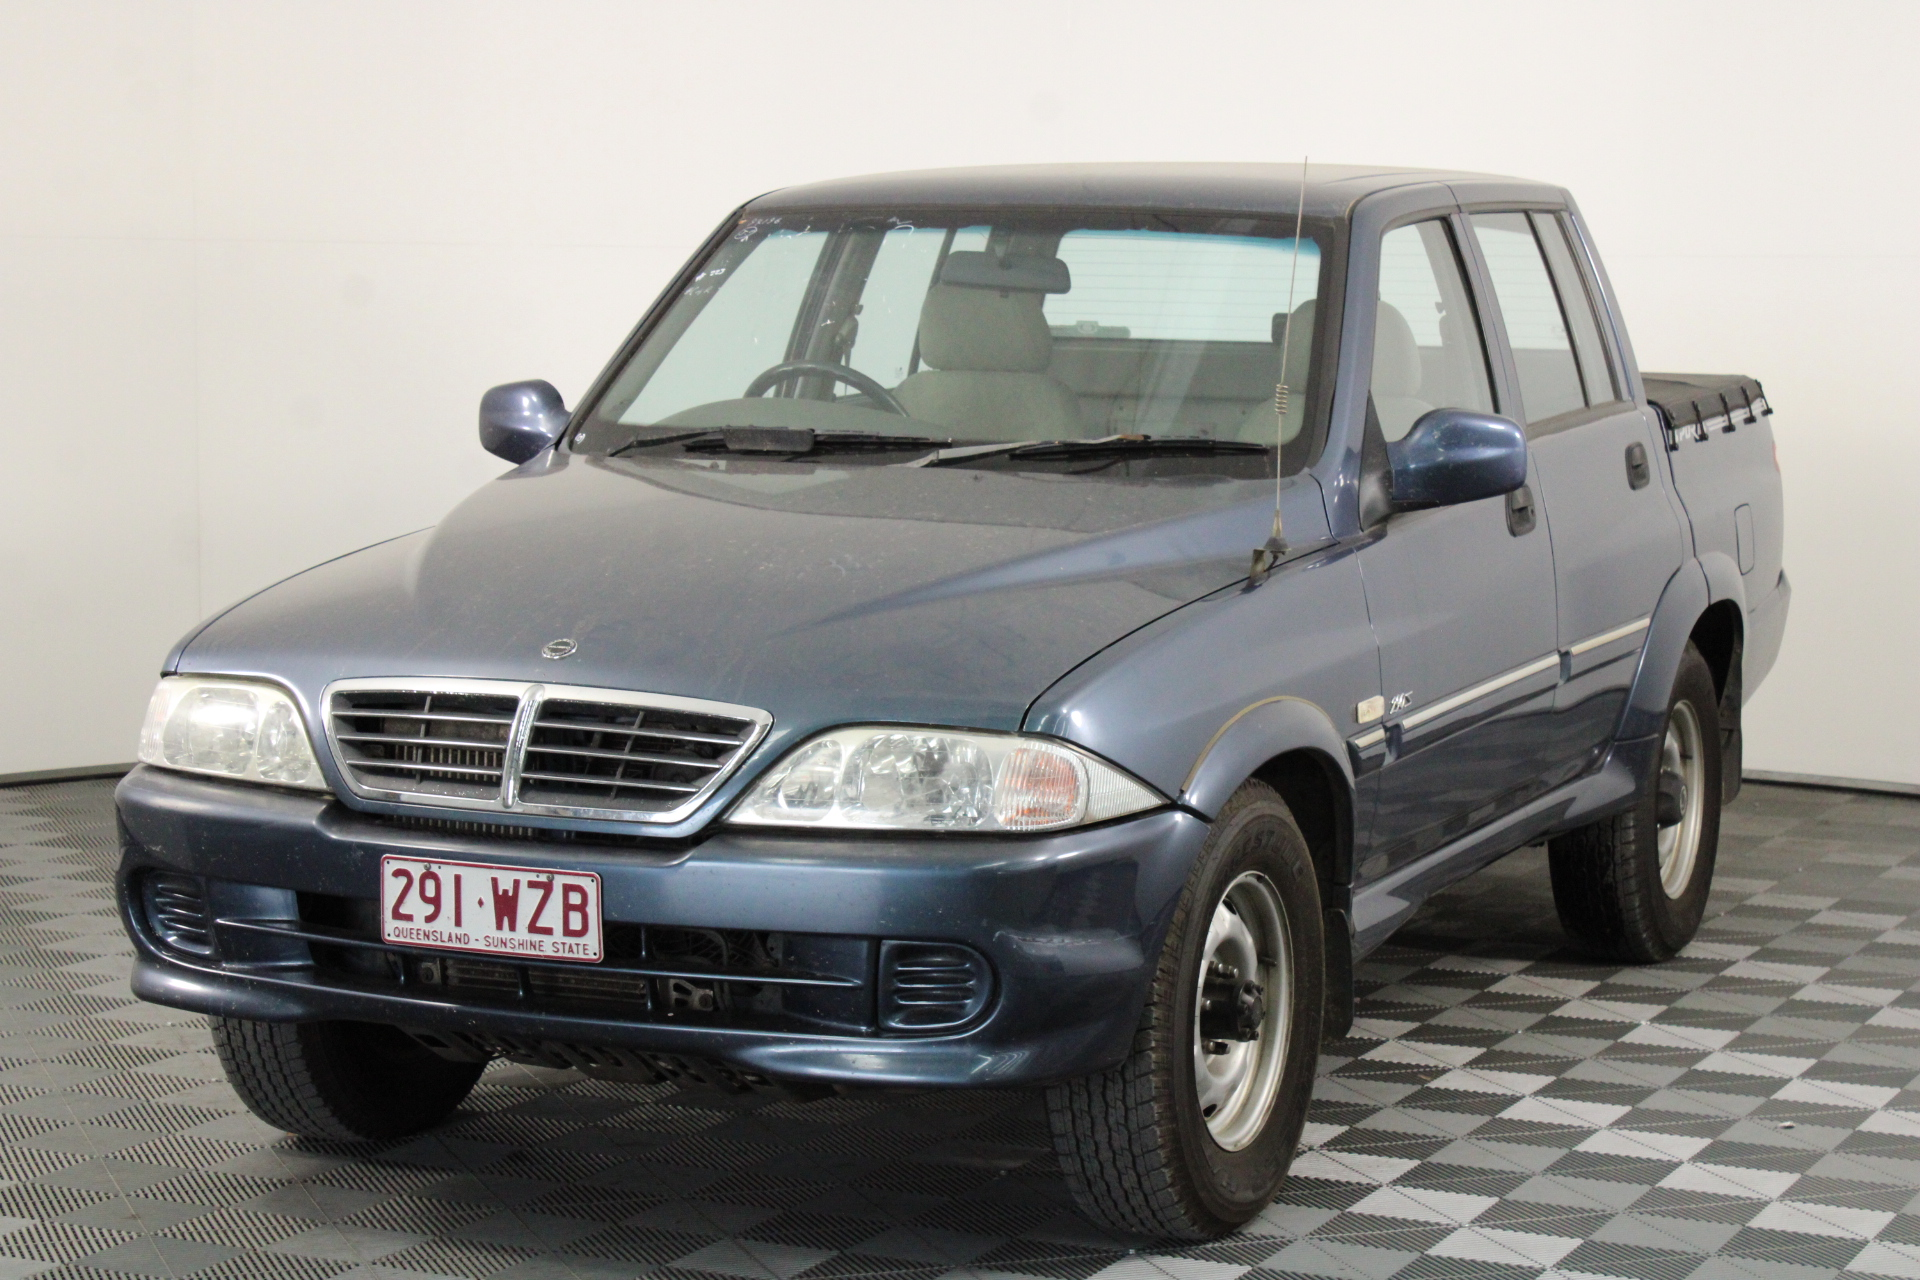 2004 Ssangyong Musso 4x4 Turbo Diesel Automatic Ute